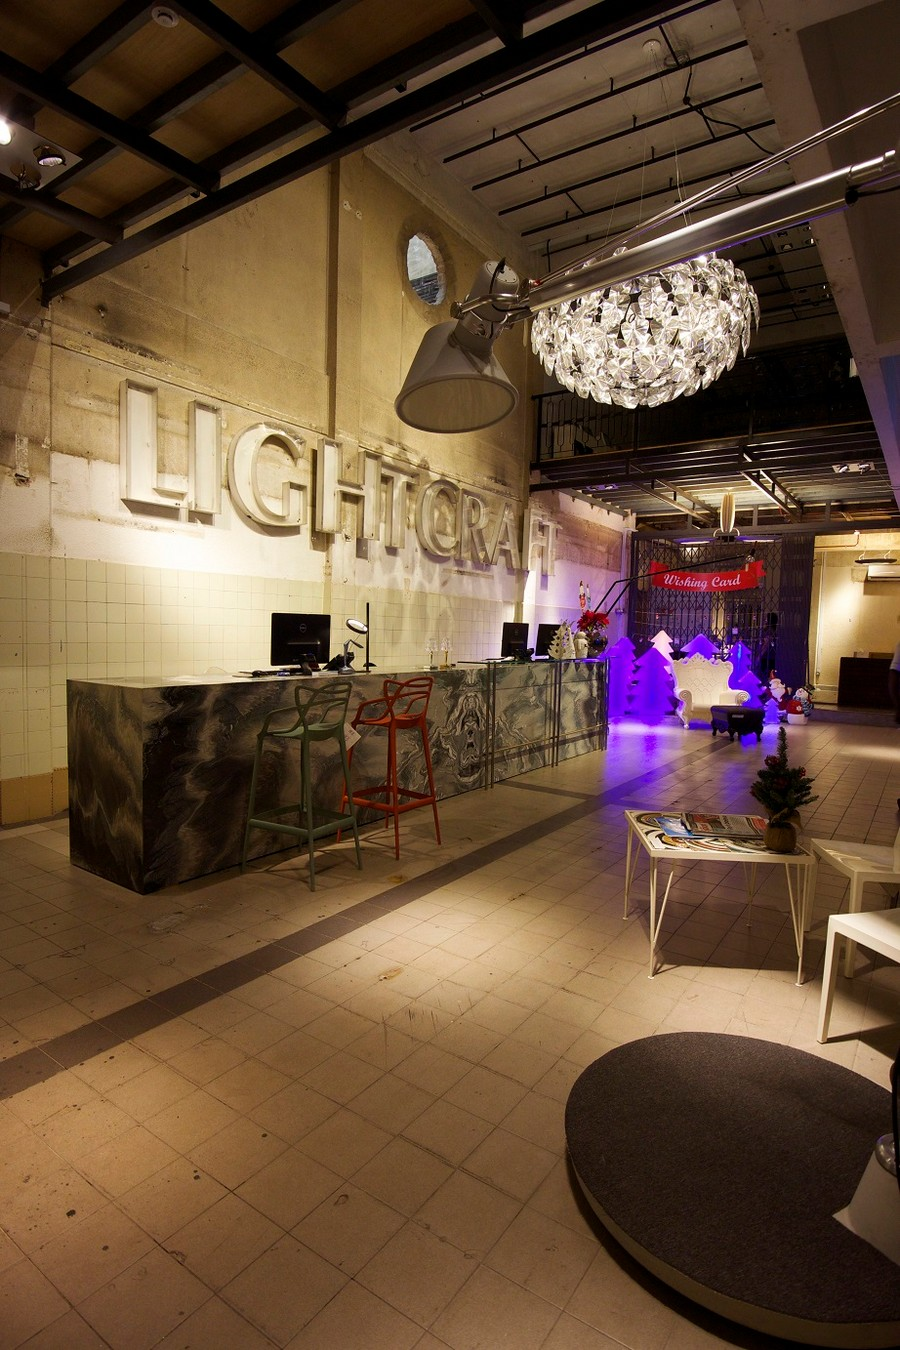 Top Lighting Design Brands To Find At LIGHTCRAFT Showroom lightcraft Top Lighting Design Brands To Find At LIGHTCRAFT Showroom Top Lighting Design Brands To Find At LIGHTCRAFT Showroom